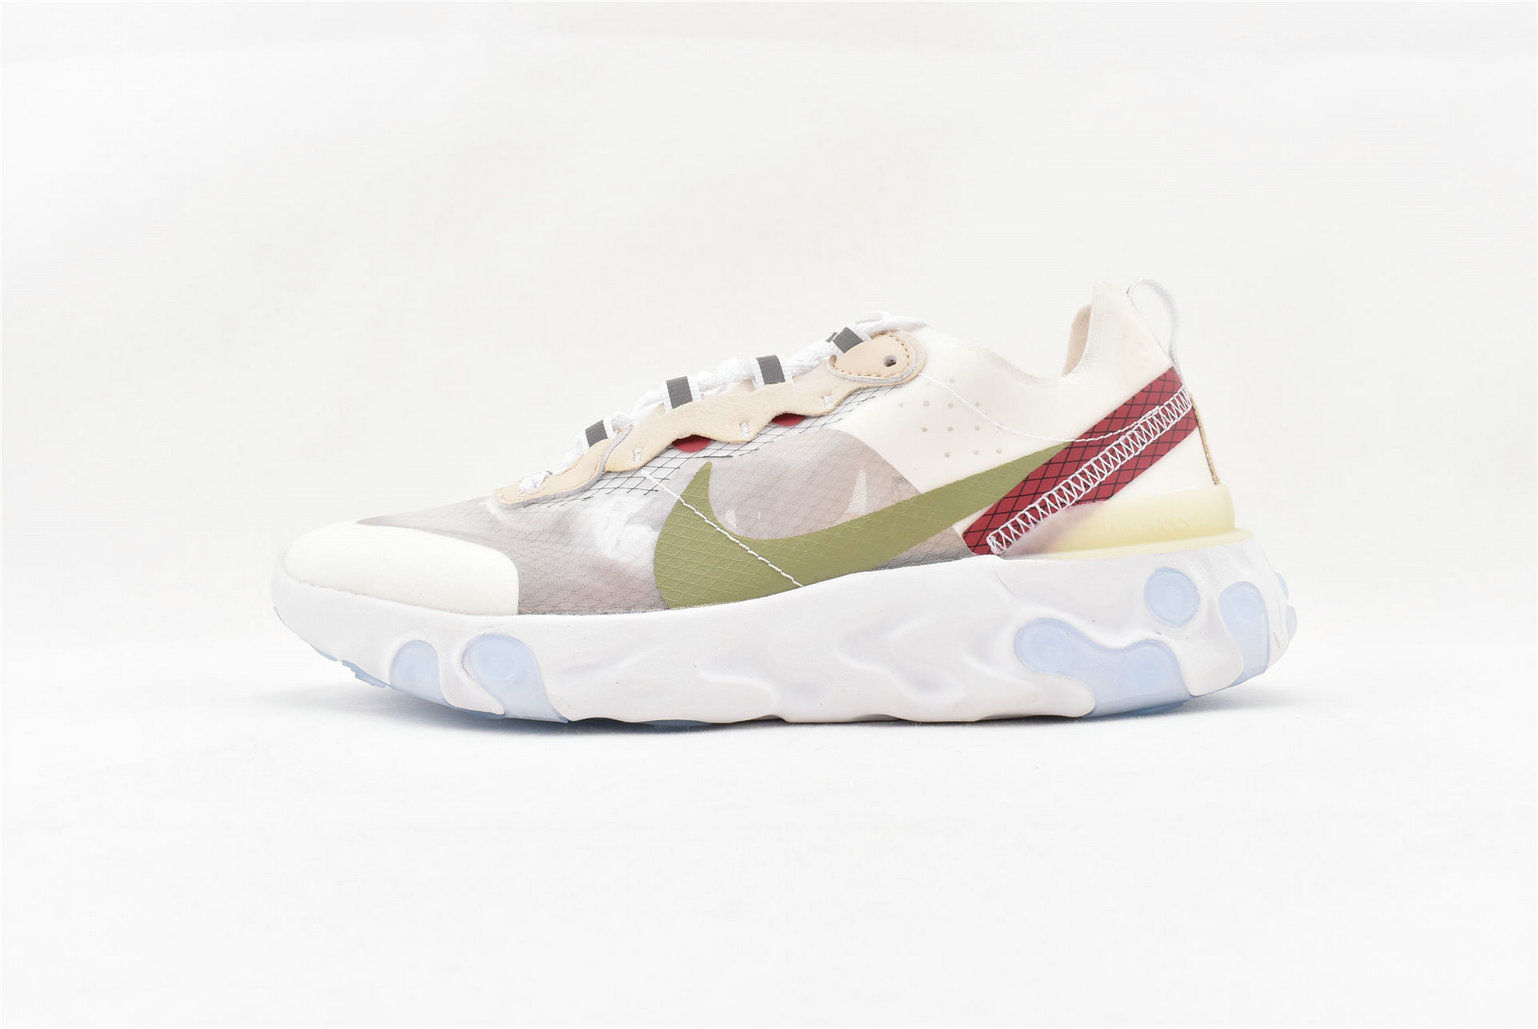 Where To Buy Womens Nike React Element 87 Undercover Sail Light Bone-White AQ1090 100